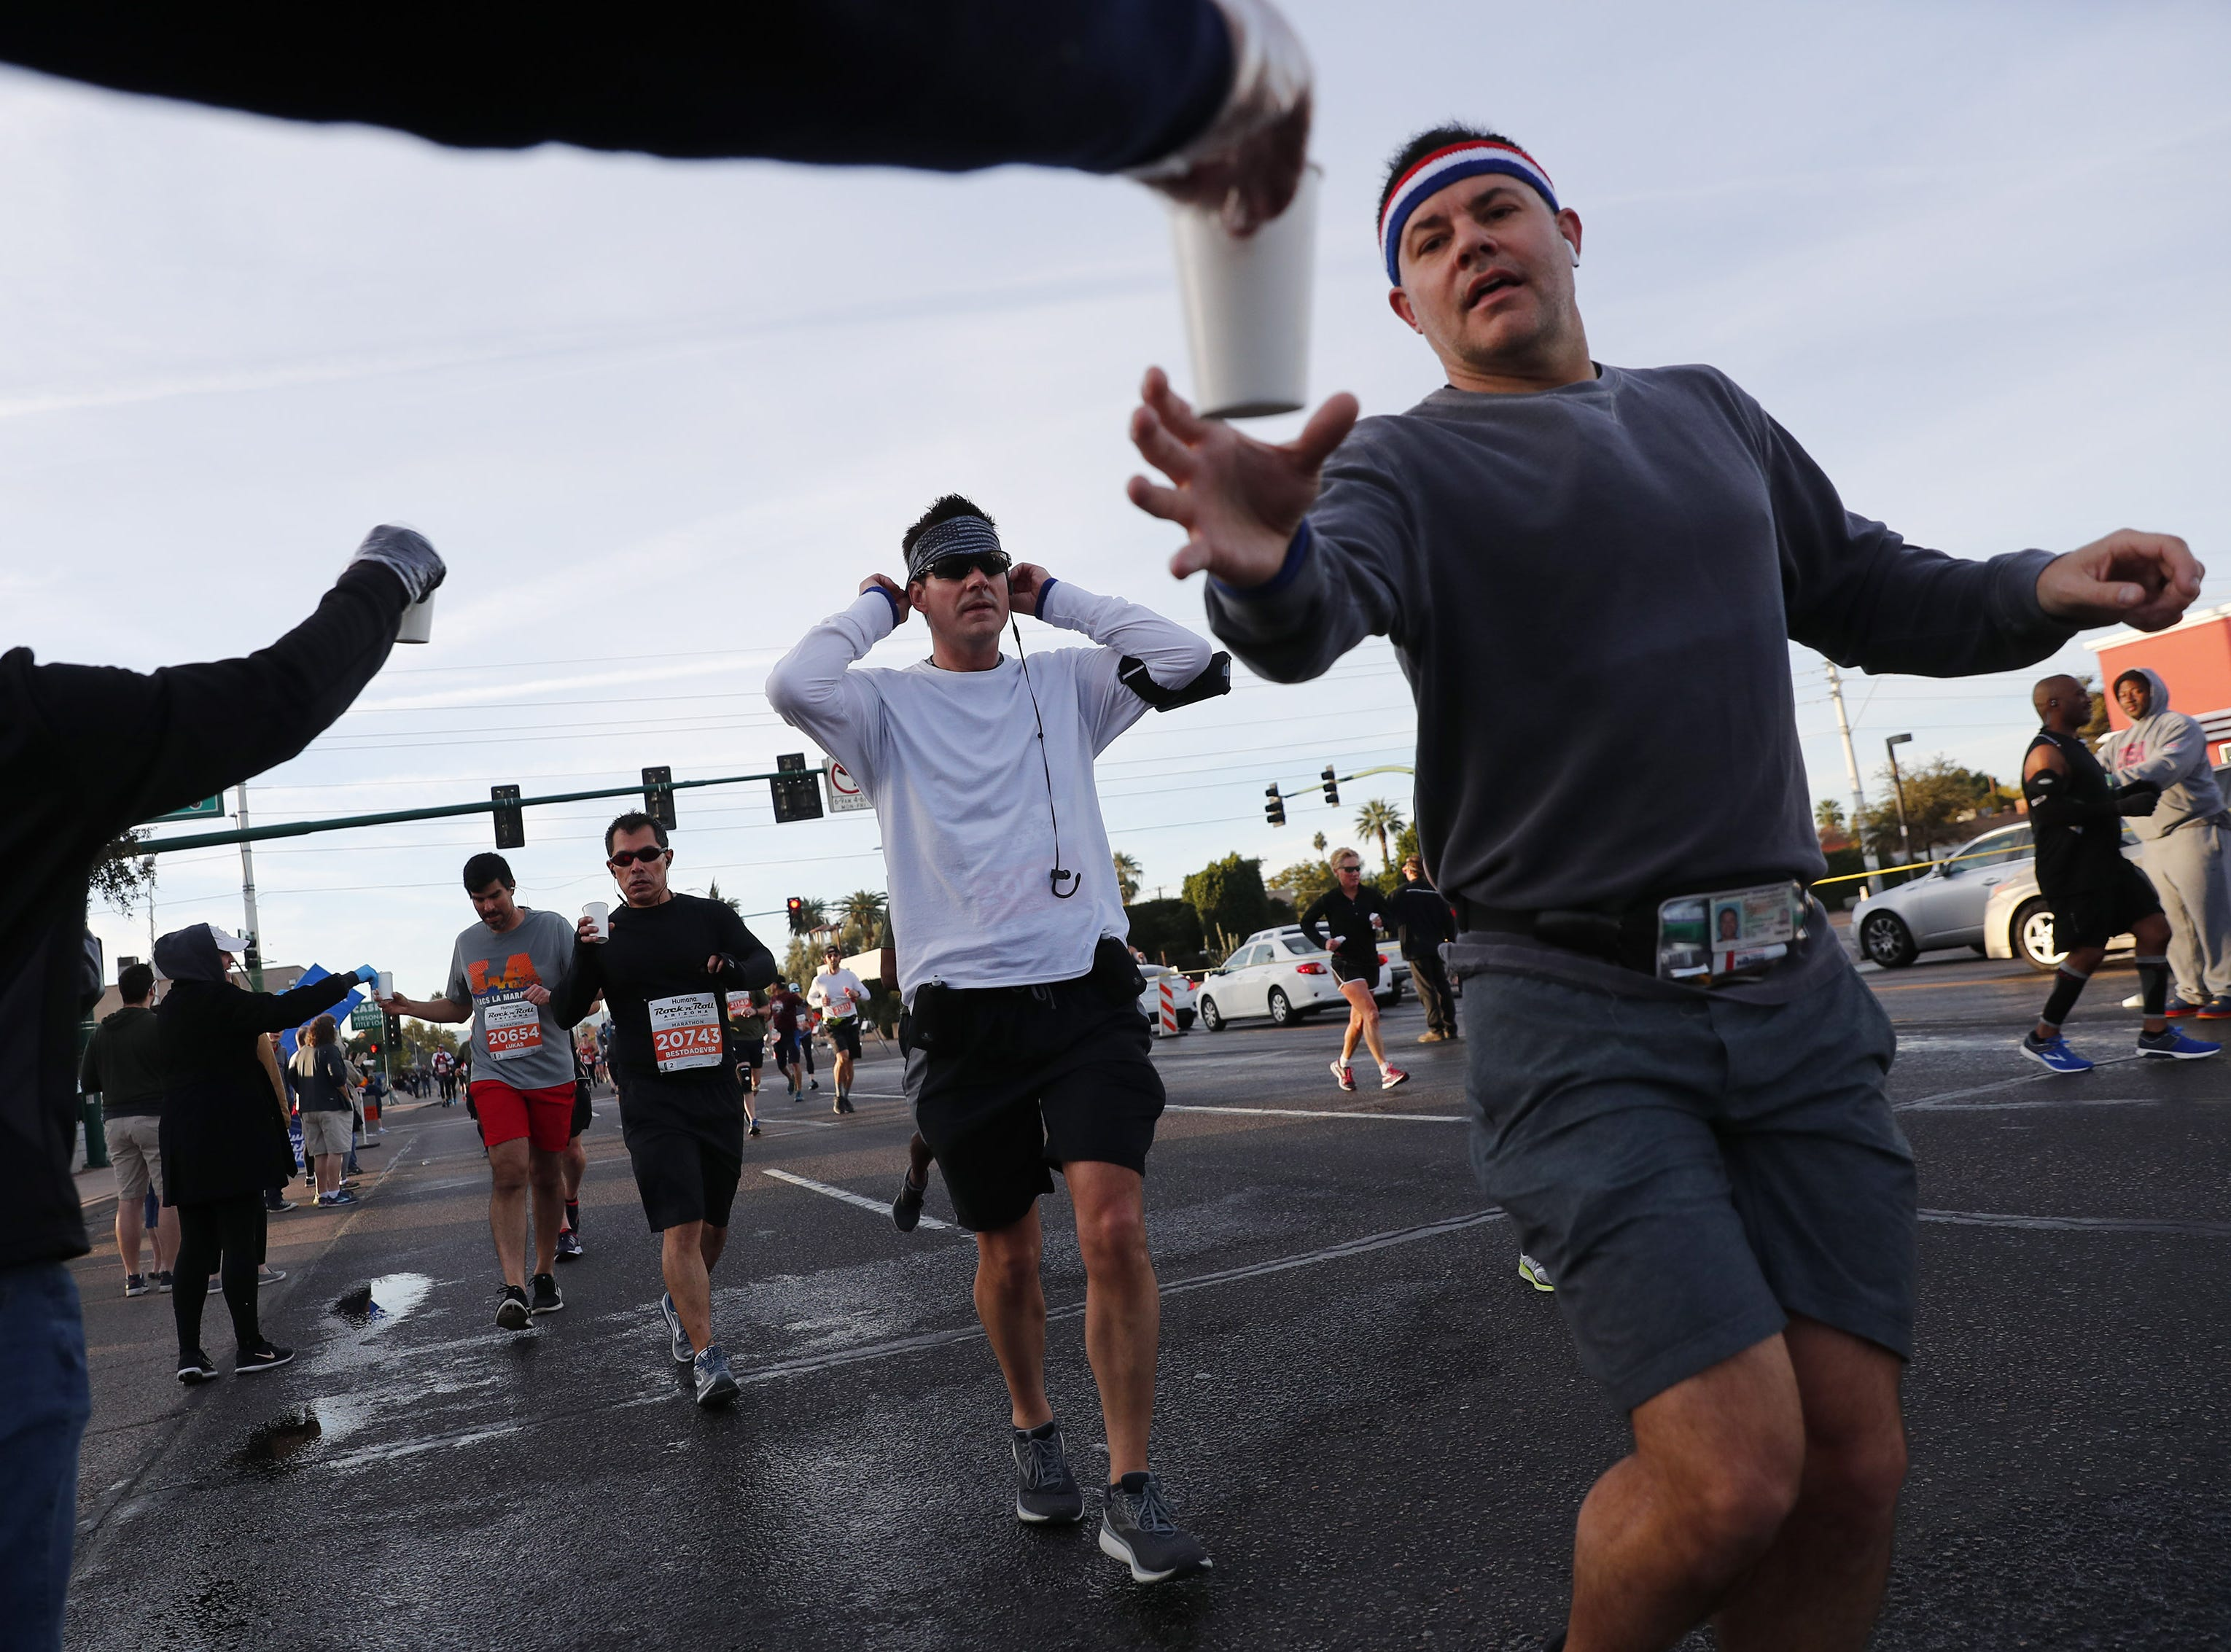 Runners grab water on 7th Ave. during the Rock 'n' Roll Marathon in Phoenix, Jan. 20, 2019.